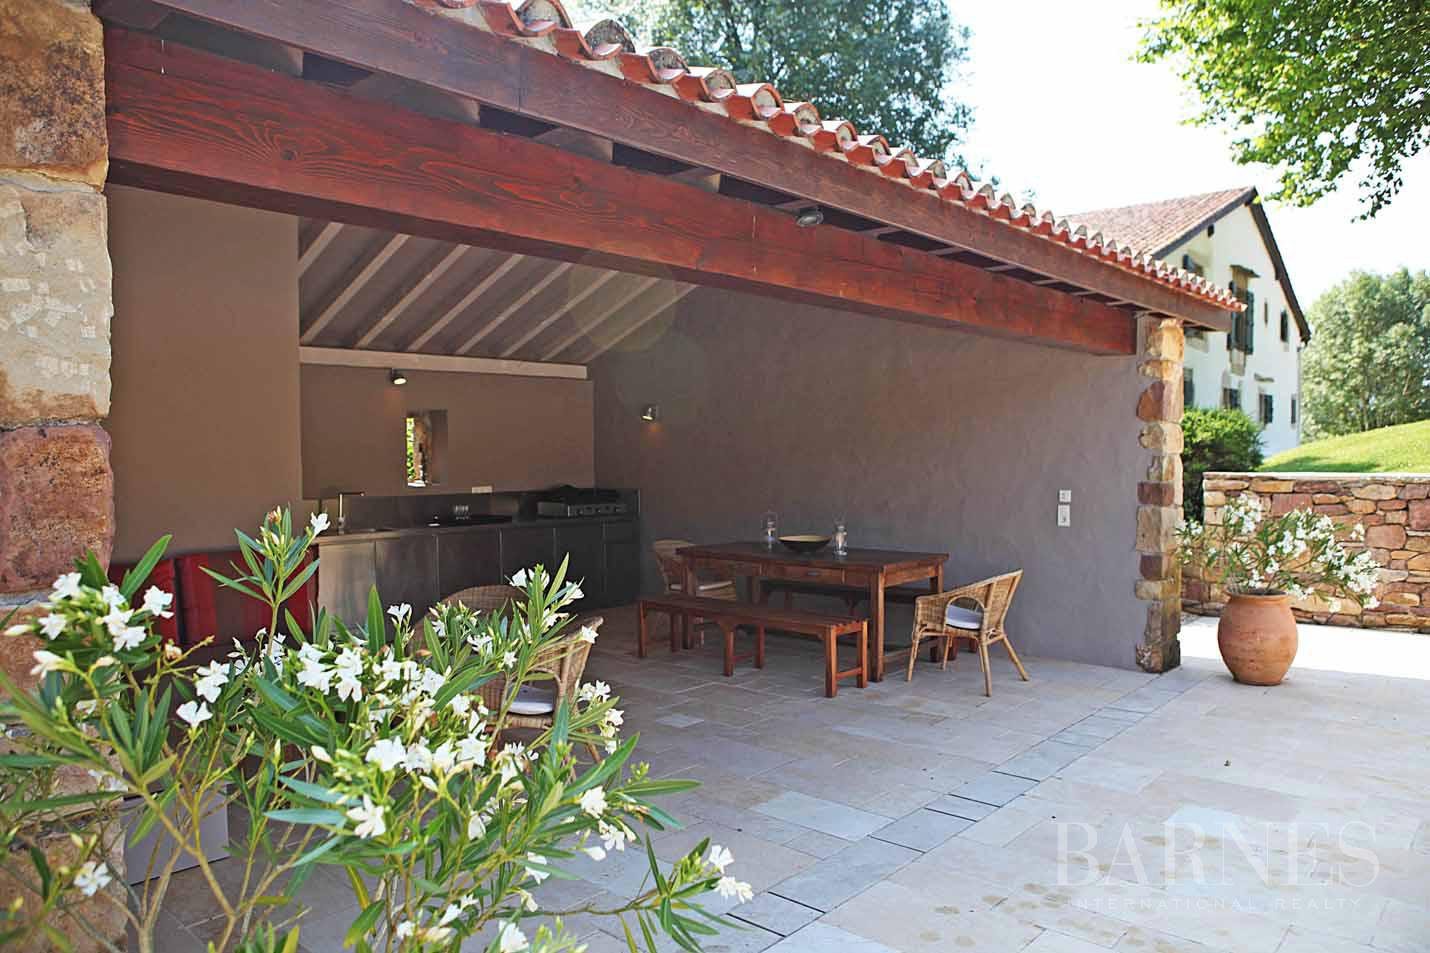 SARE, 20 MINUTES FROM SAINT JEAN DE LUZ, BASQUE STYLE FARMHOUSE WITH HEATED POOL, PANORAMIC MOUNTAIN VIEW picture 5